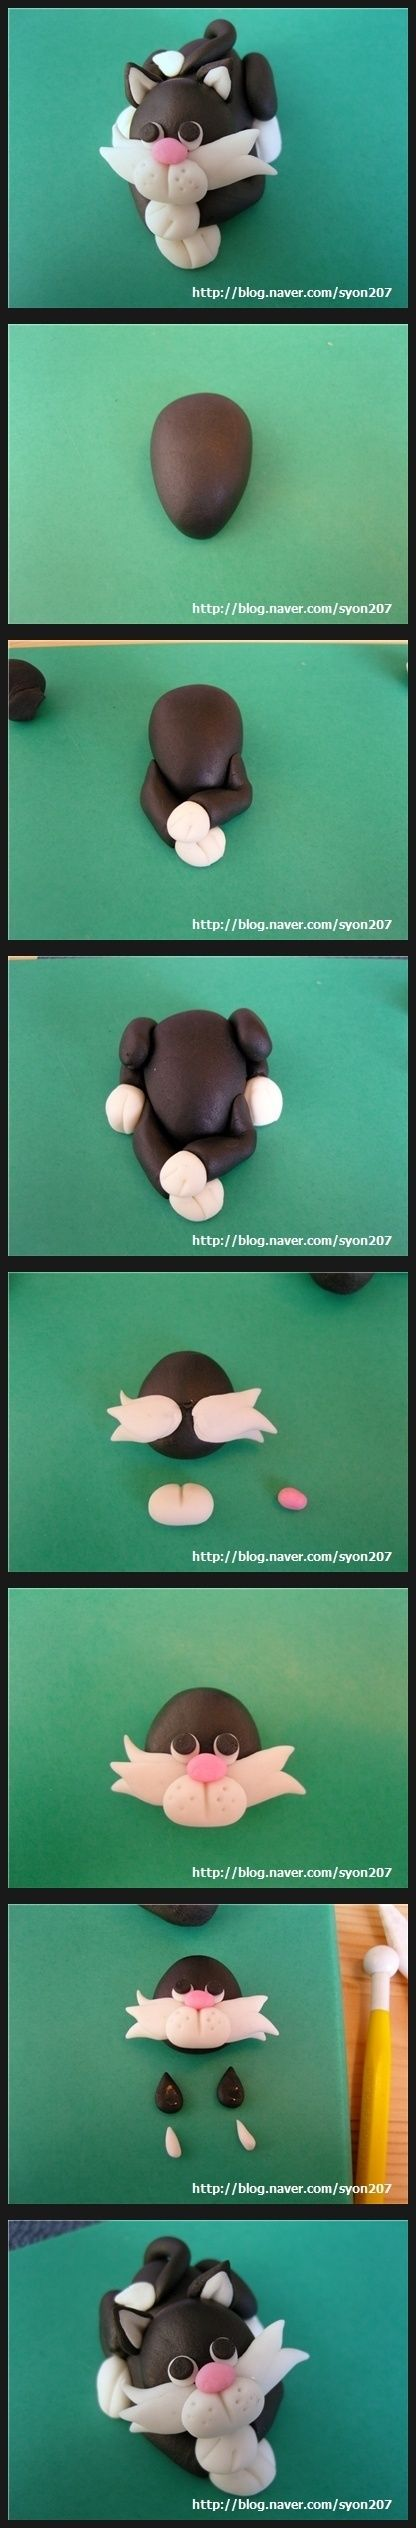 Cate, cute, polymer clay tutorial